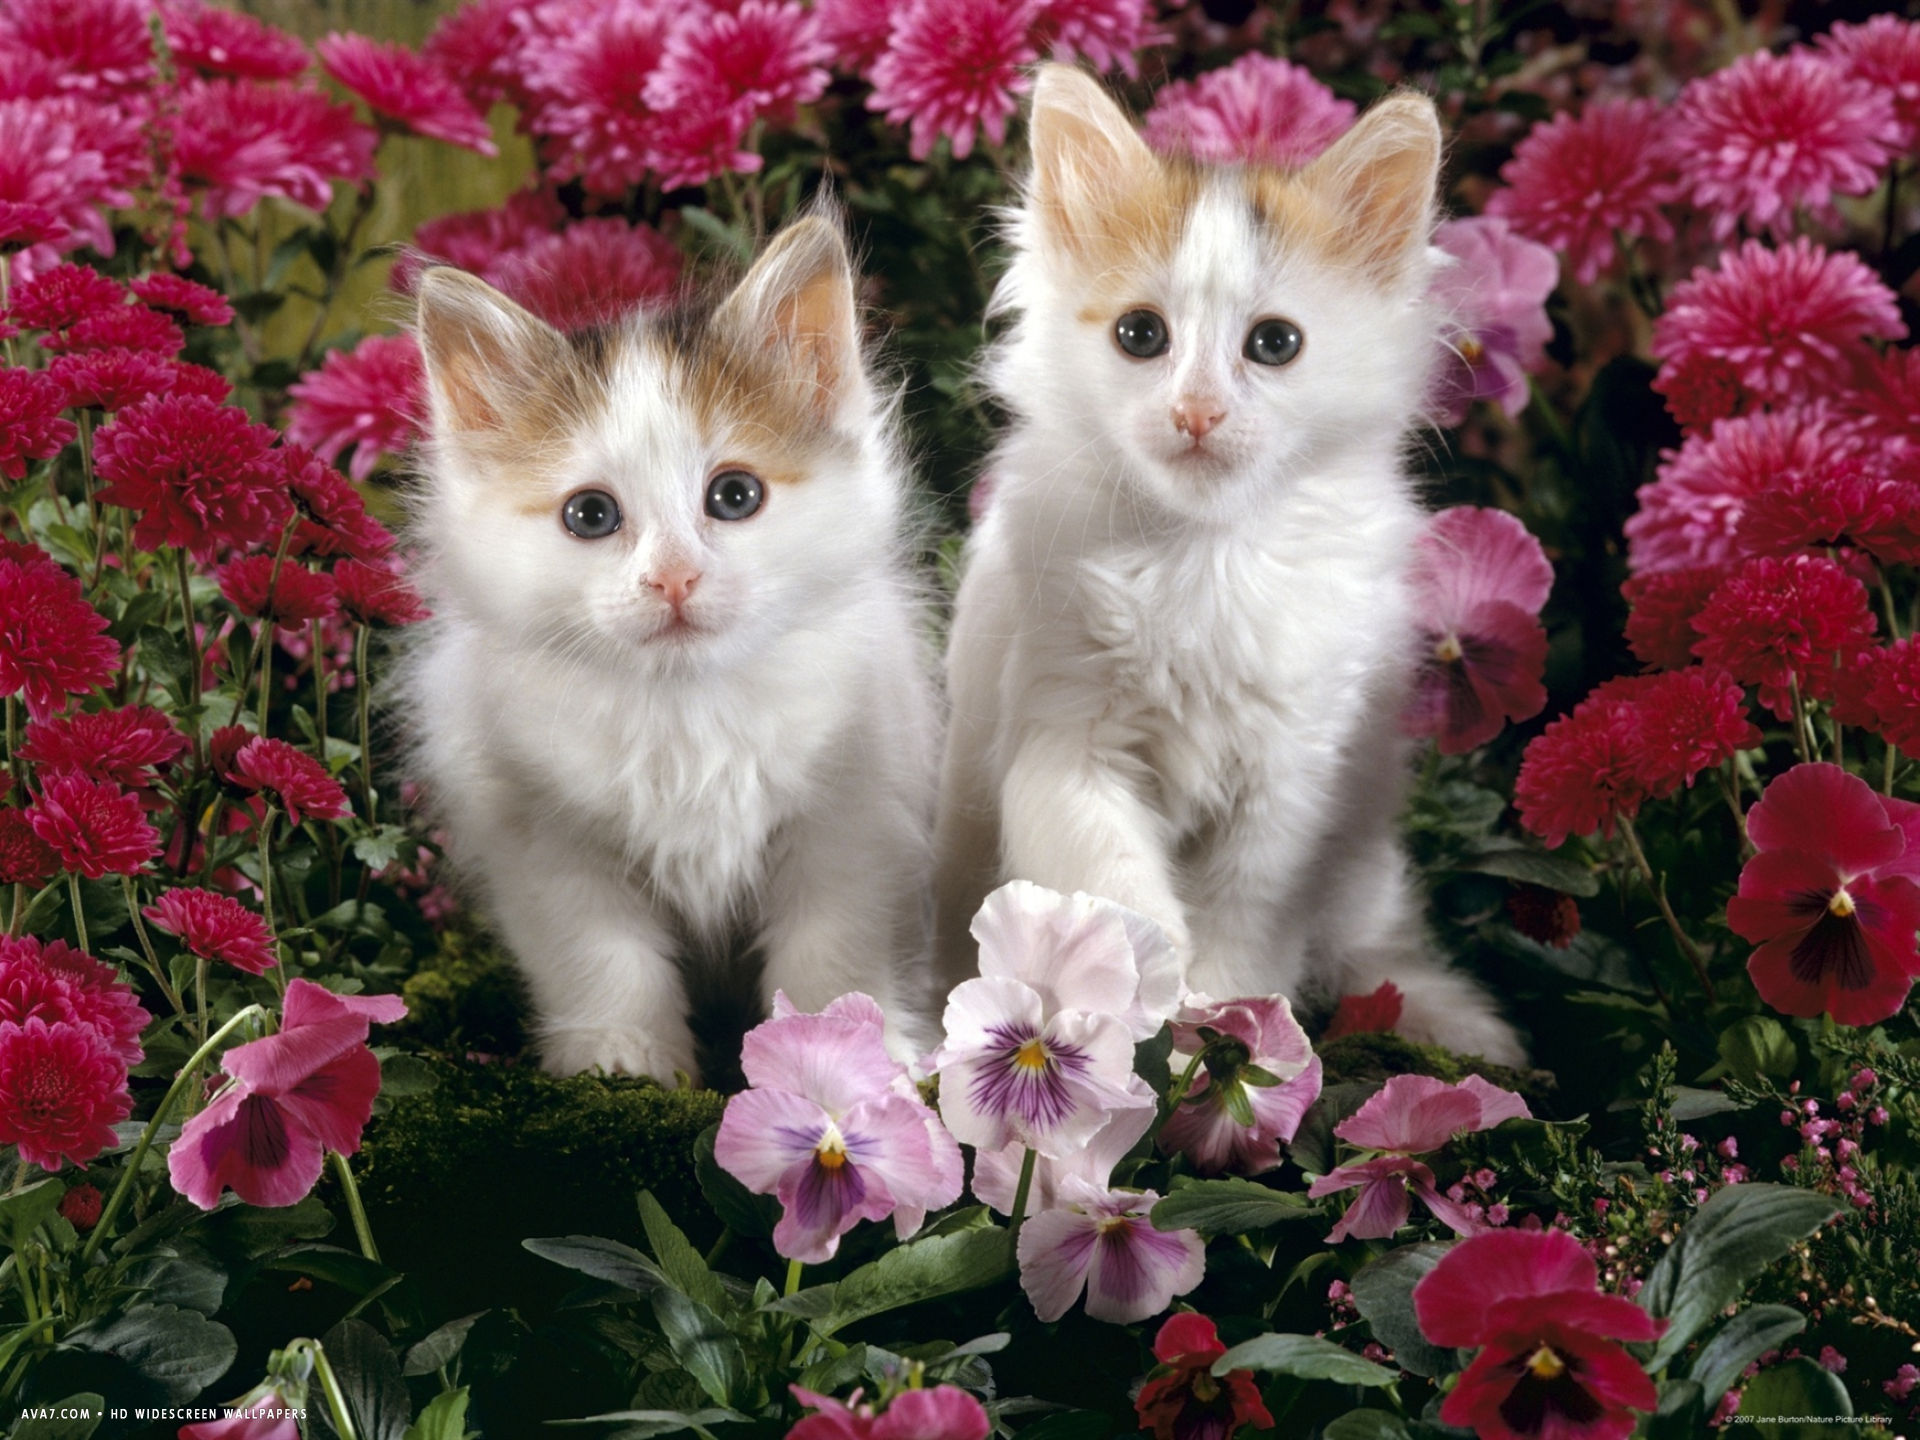 7 week white and tortoiseshell kittens among pink pansies and chrysanthemums